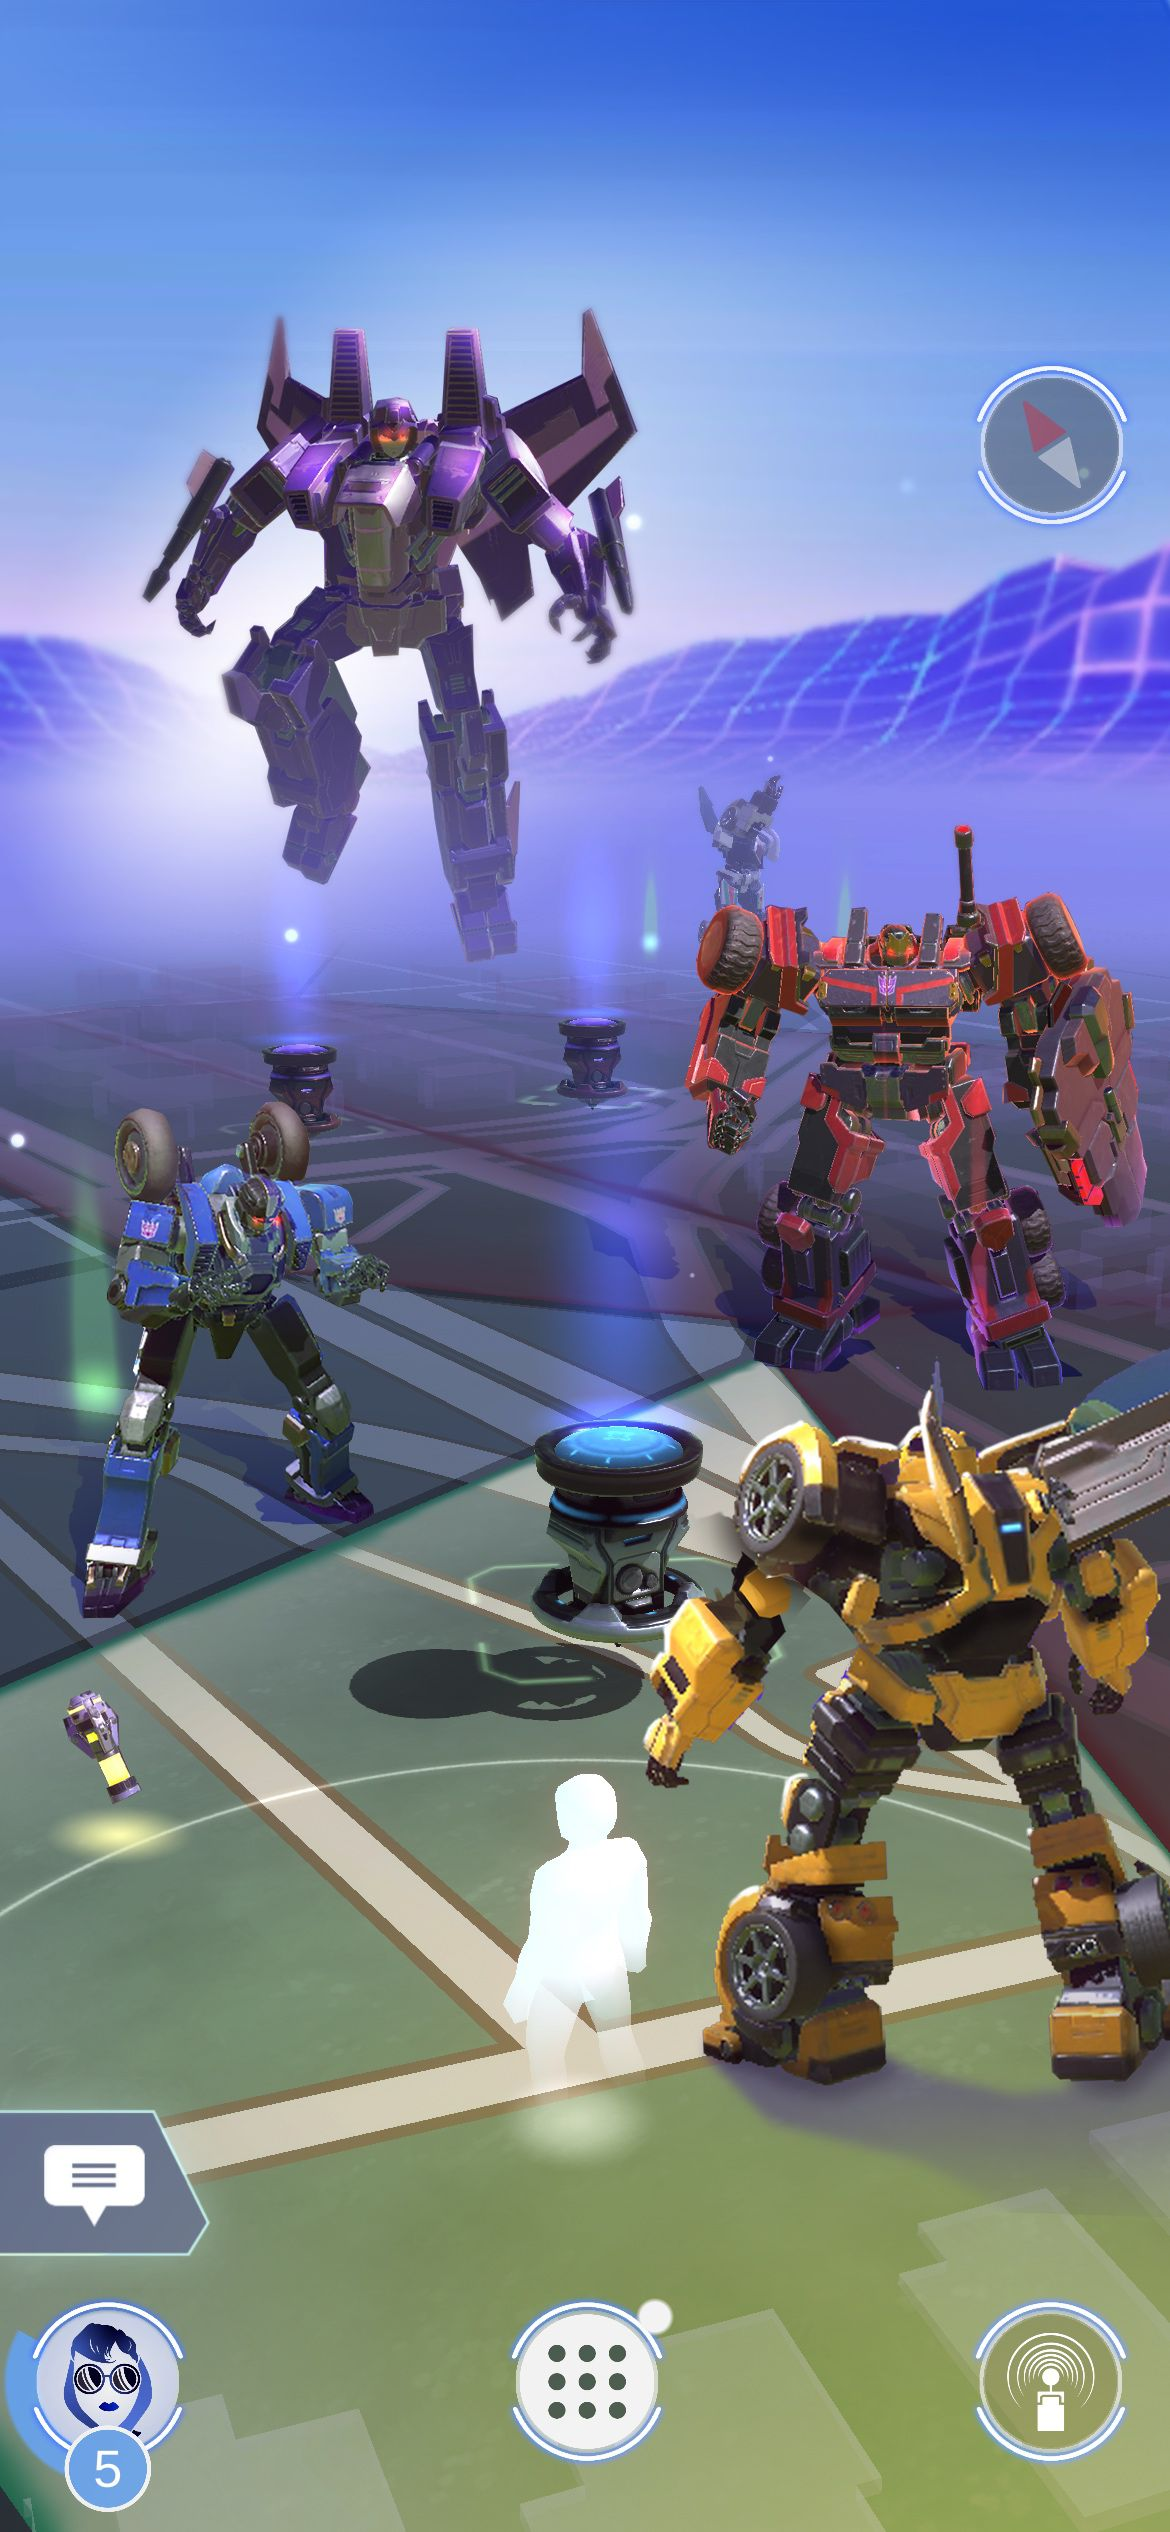 The world map of Transformers: Heavy Metal showing Bumblebee and various Decepticons